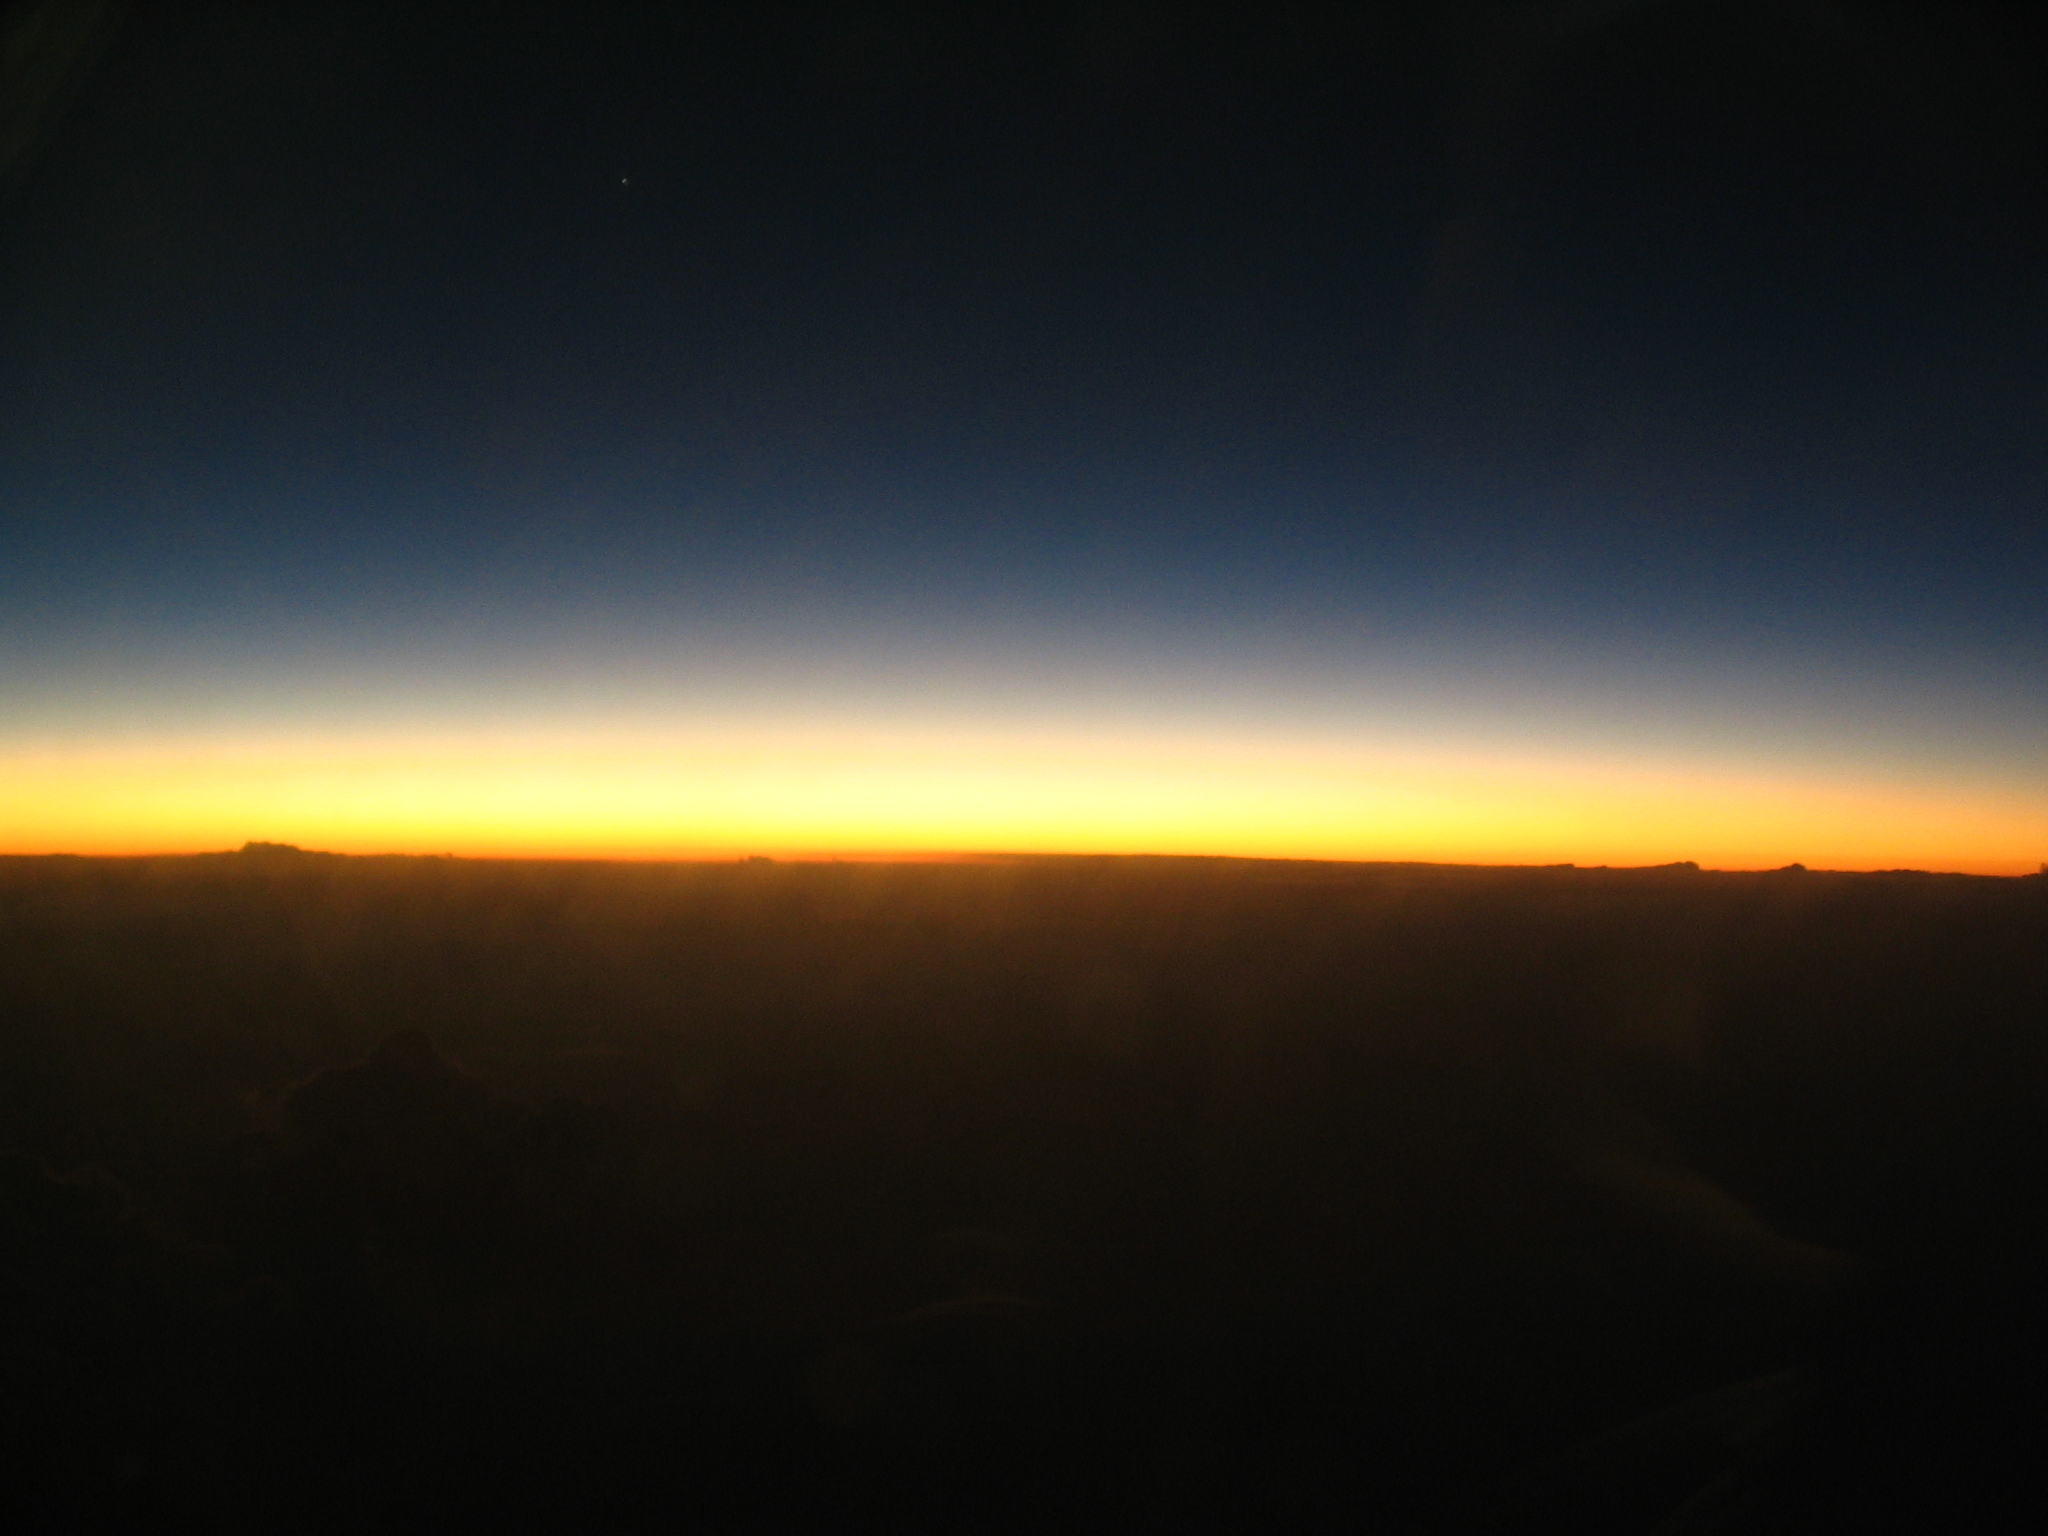 File:Post-sunset horizon from aircraft.JPG - Wikimedia Commons